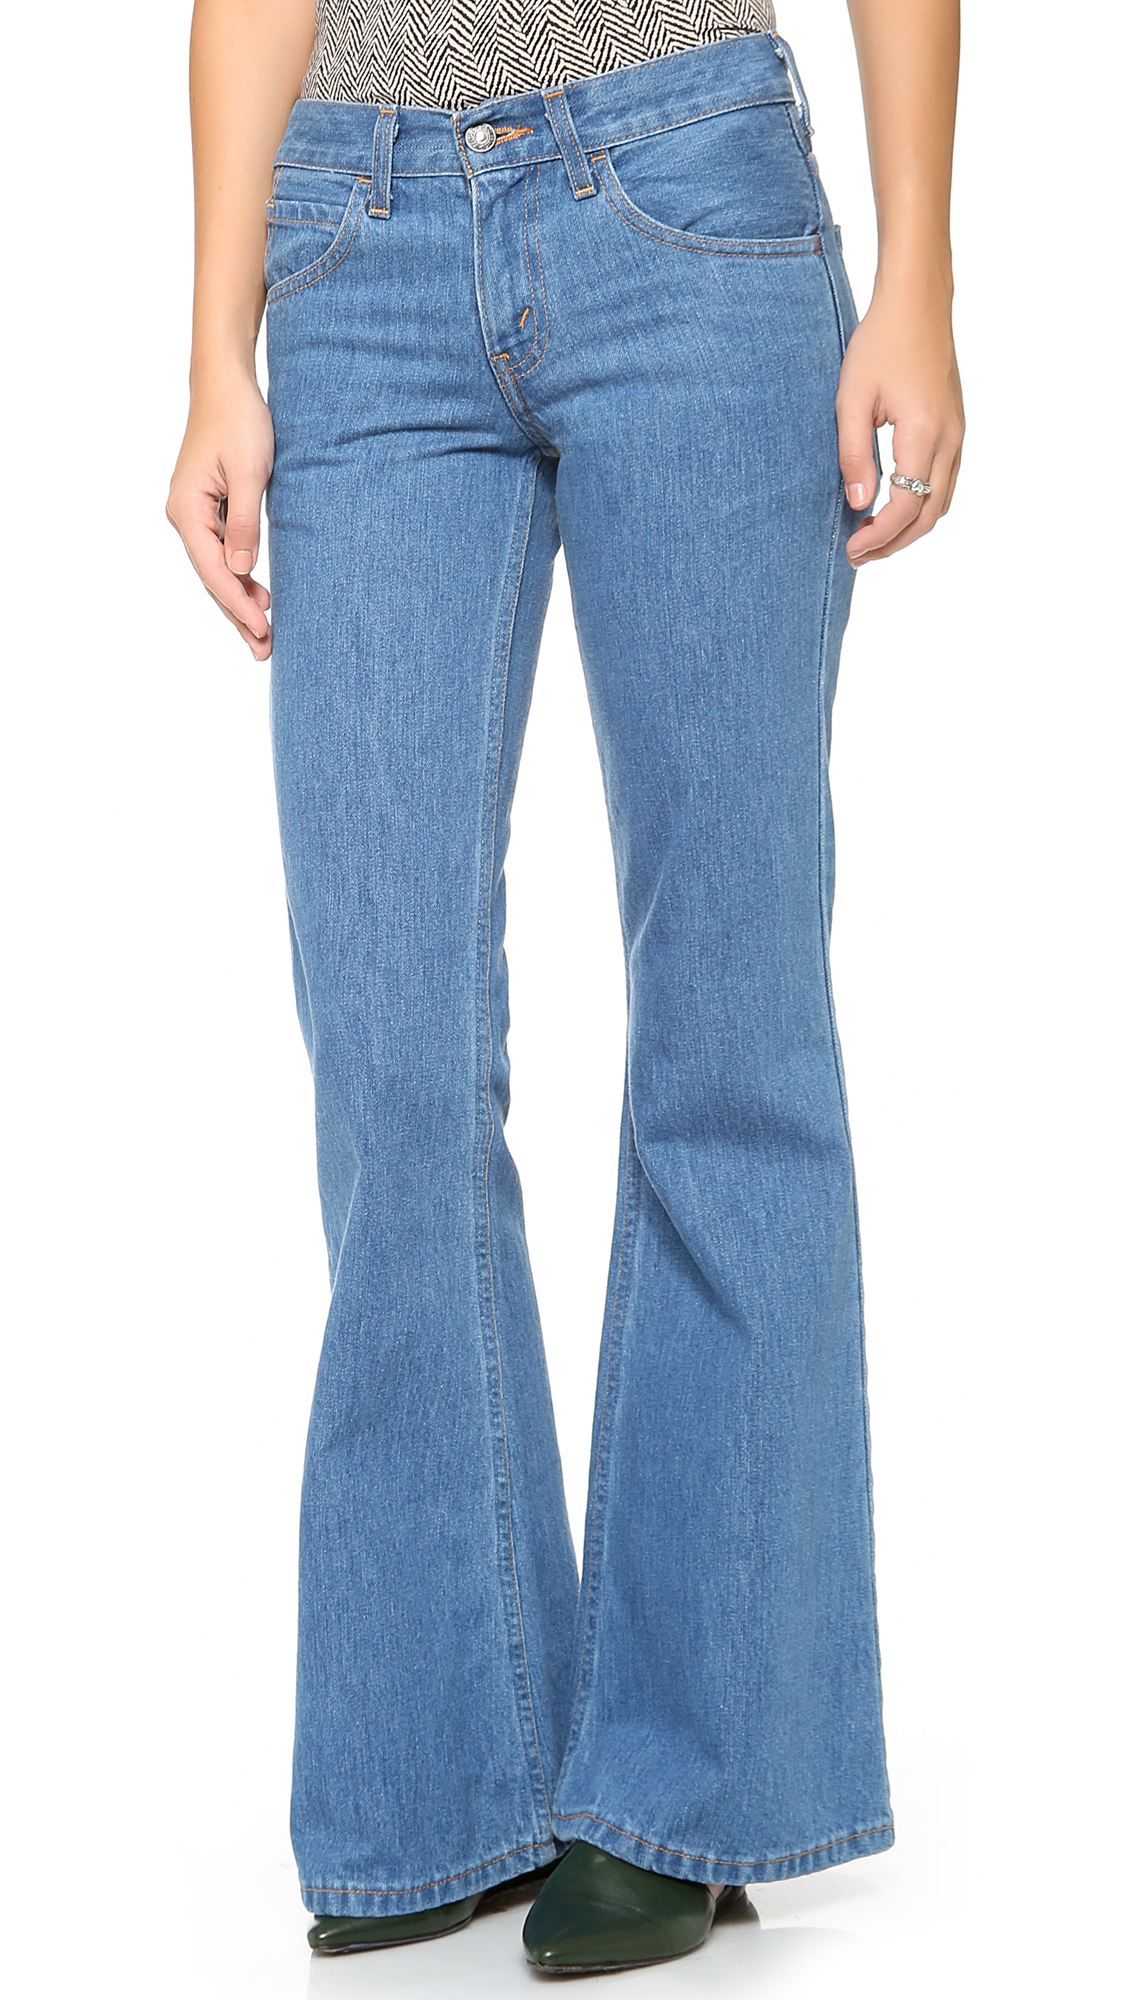 Levi's Orange Tab 1970s 684 Bell Bottom Jeans | SHOPBOP Extra 25 ...